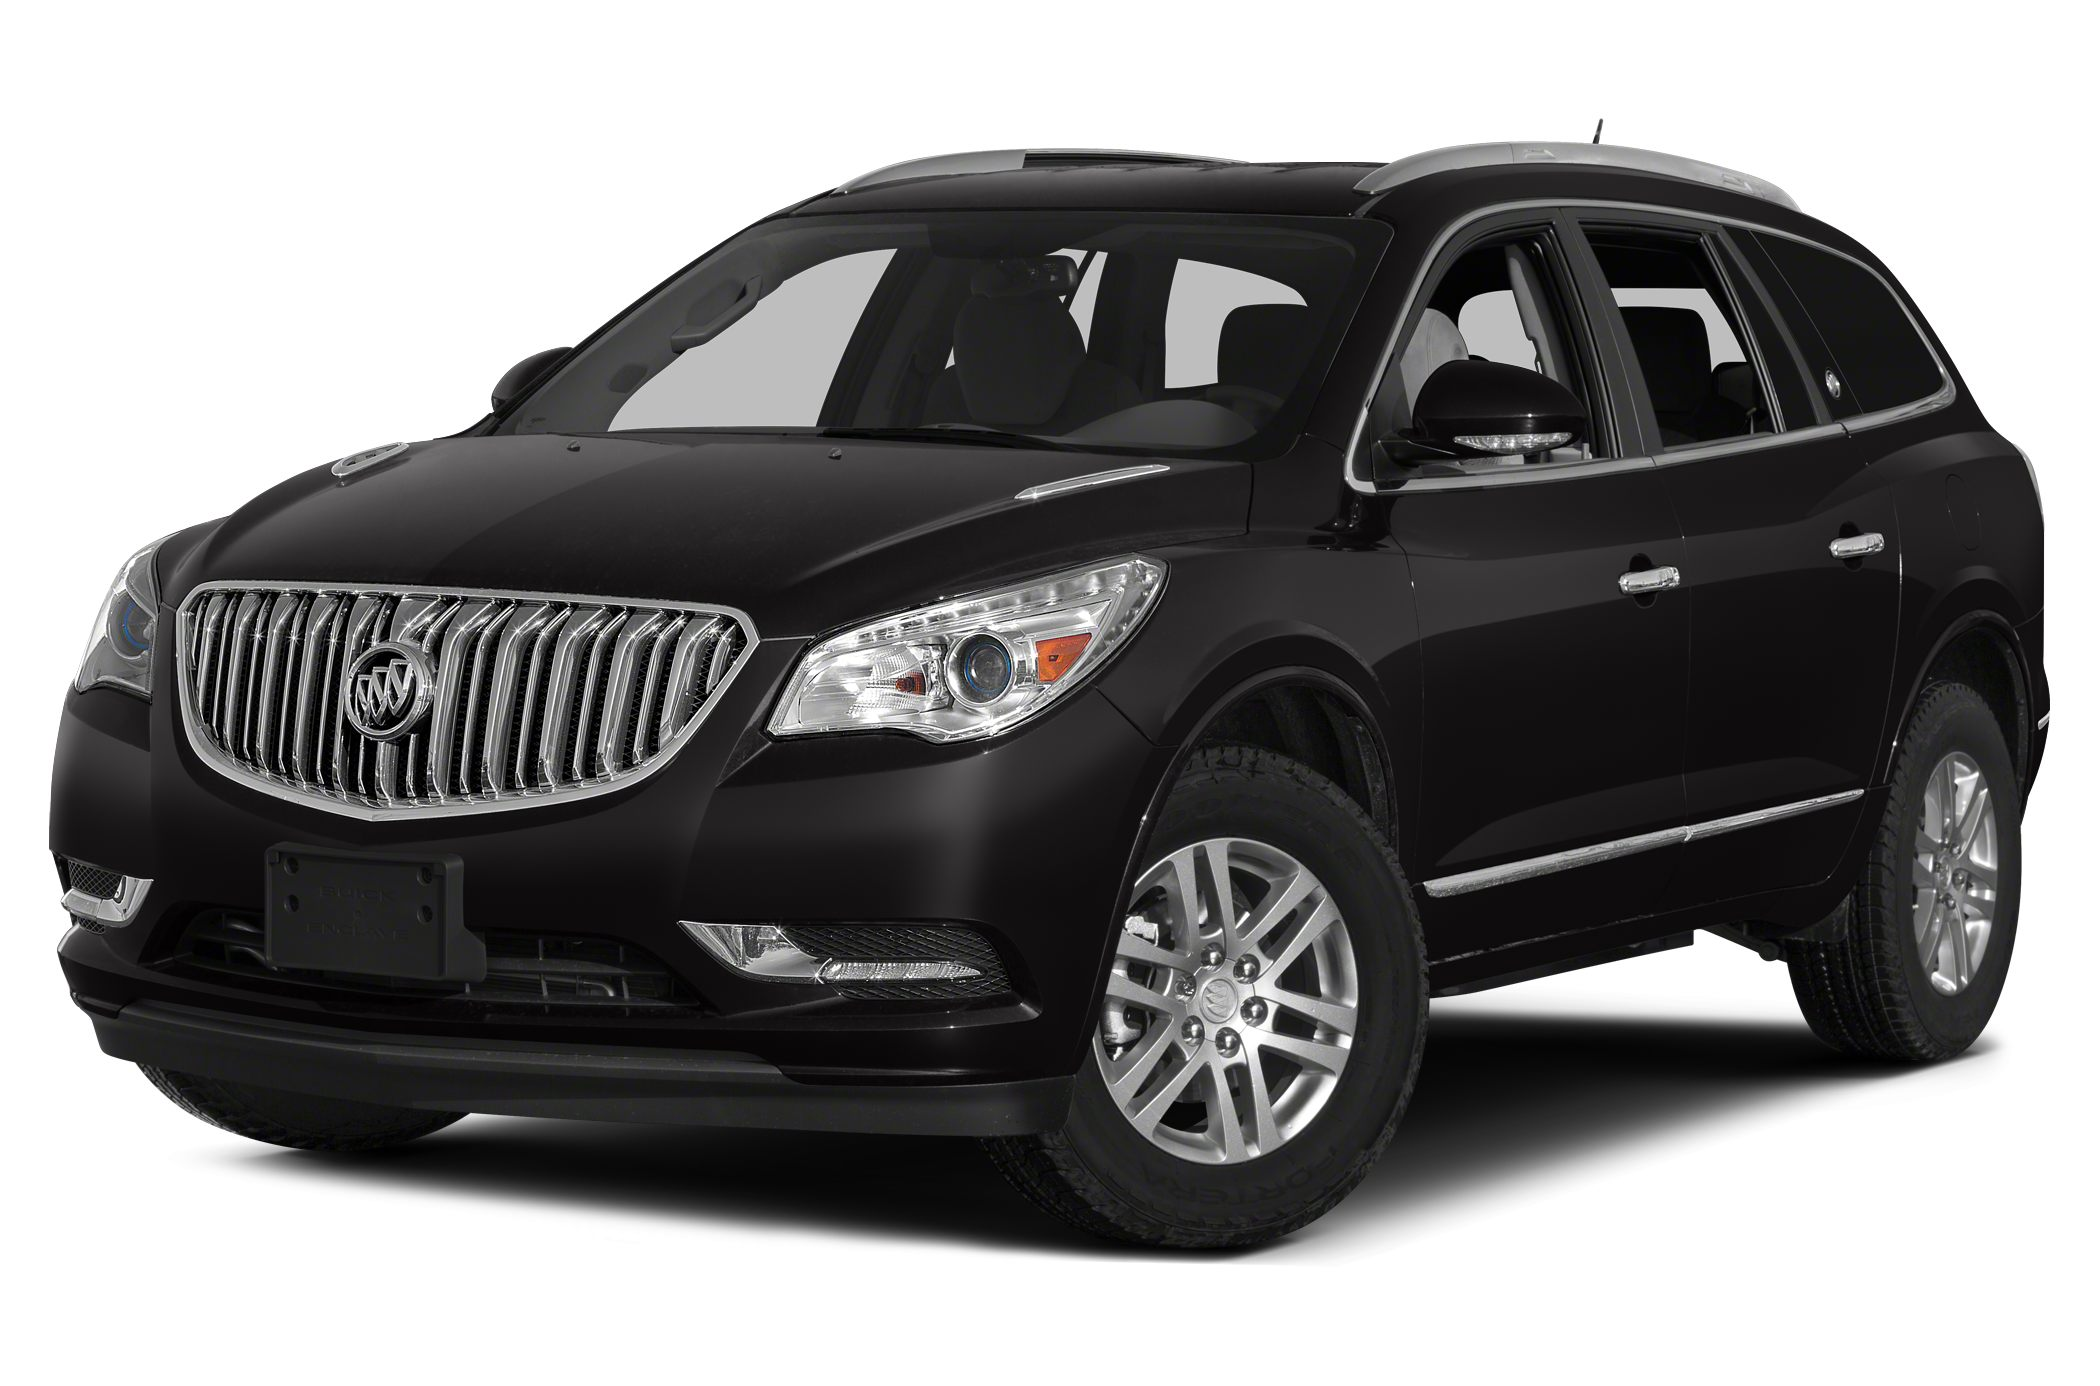 2015 Buick Enclave Leather SUV for sale in West Plains for $44,375 with 0 miles.